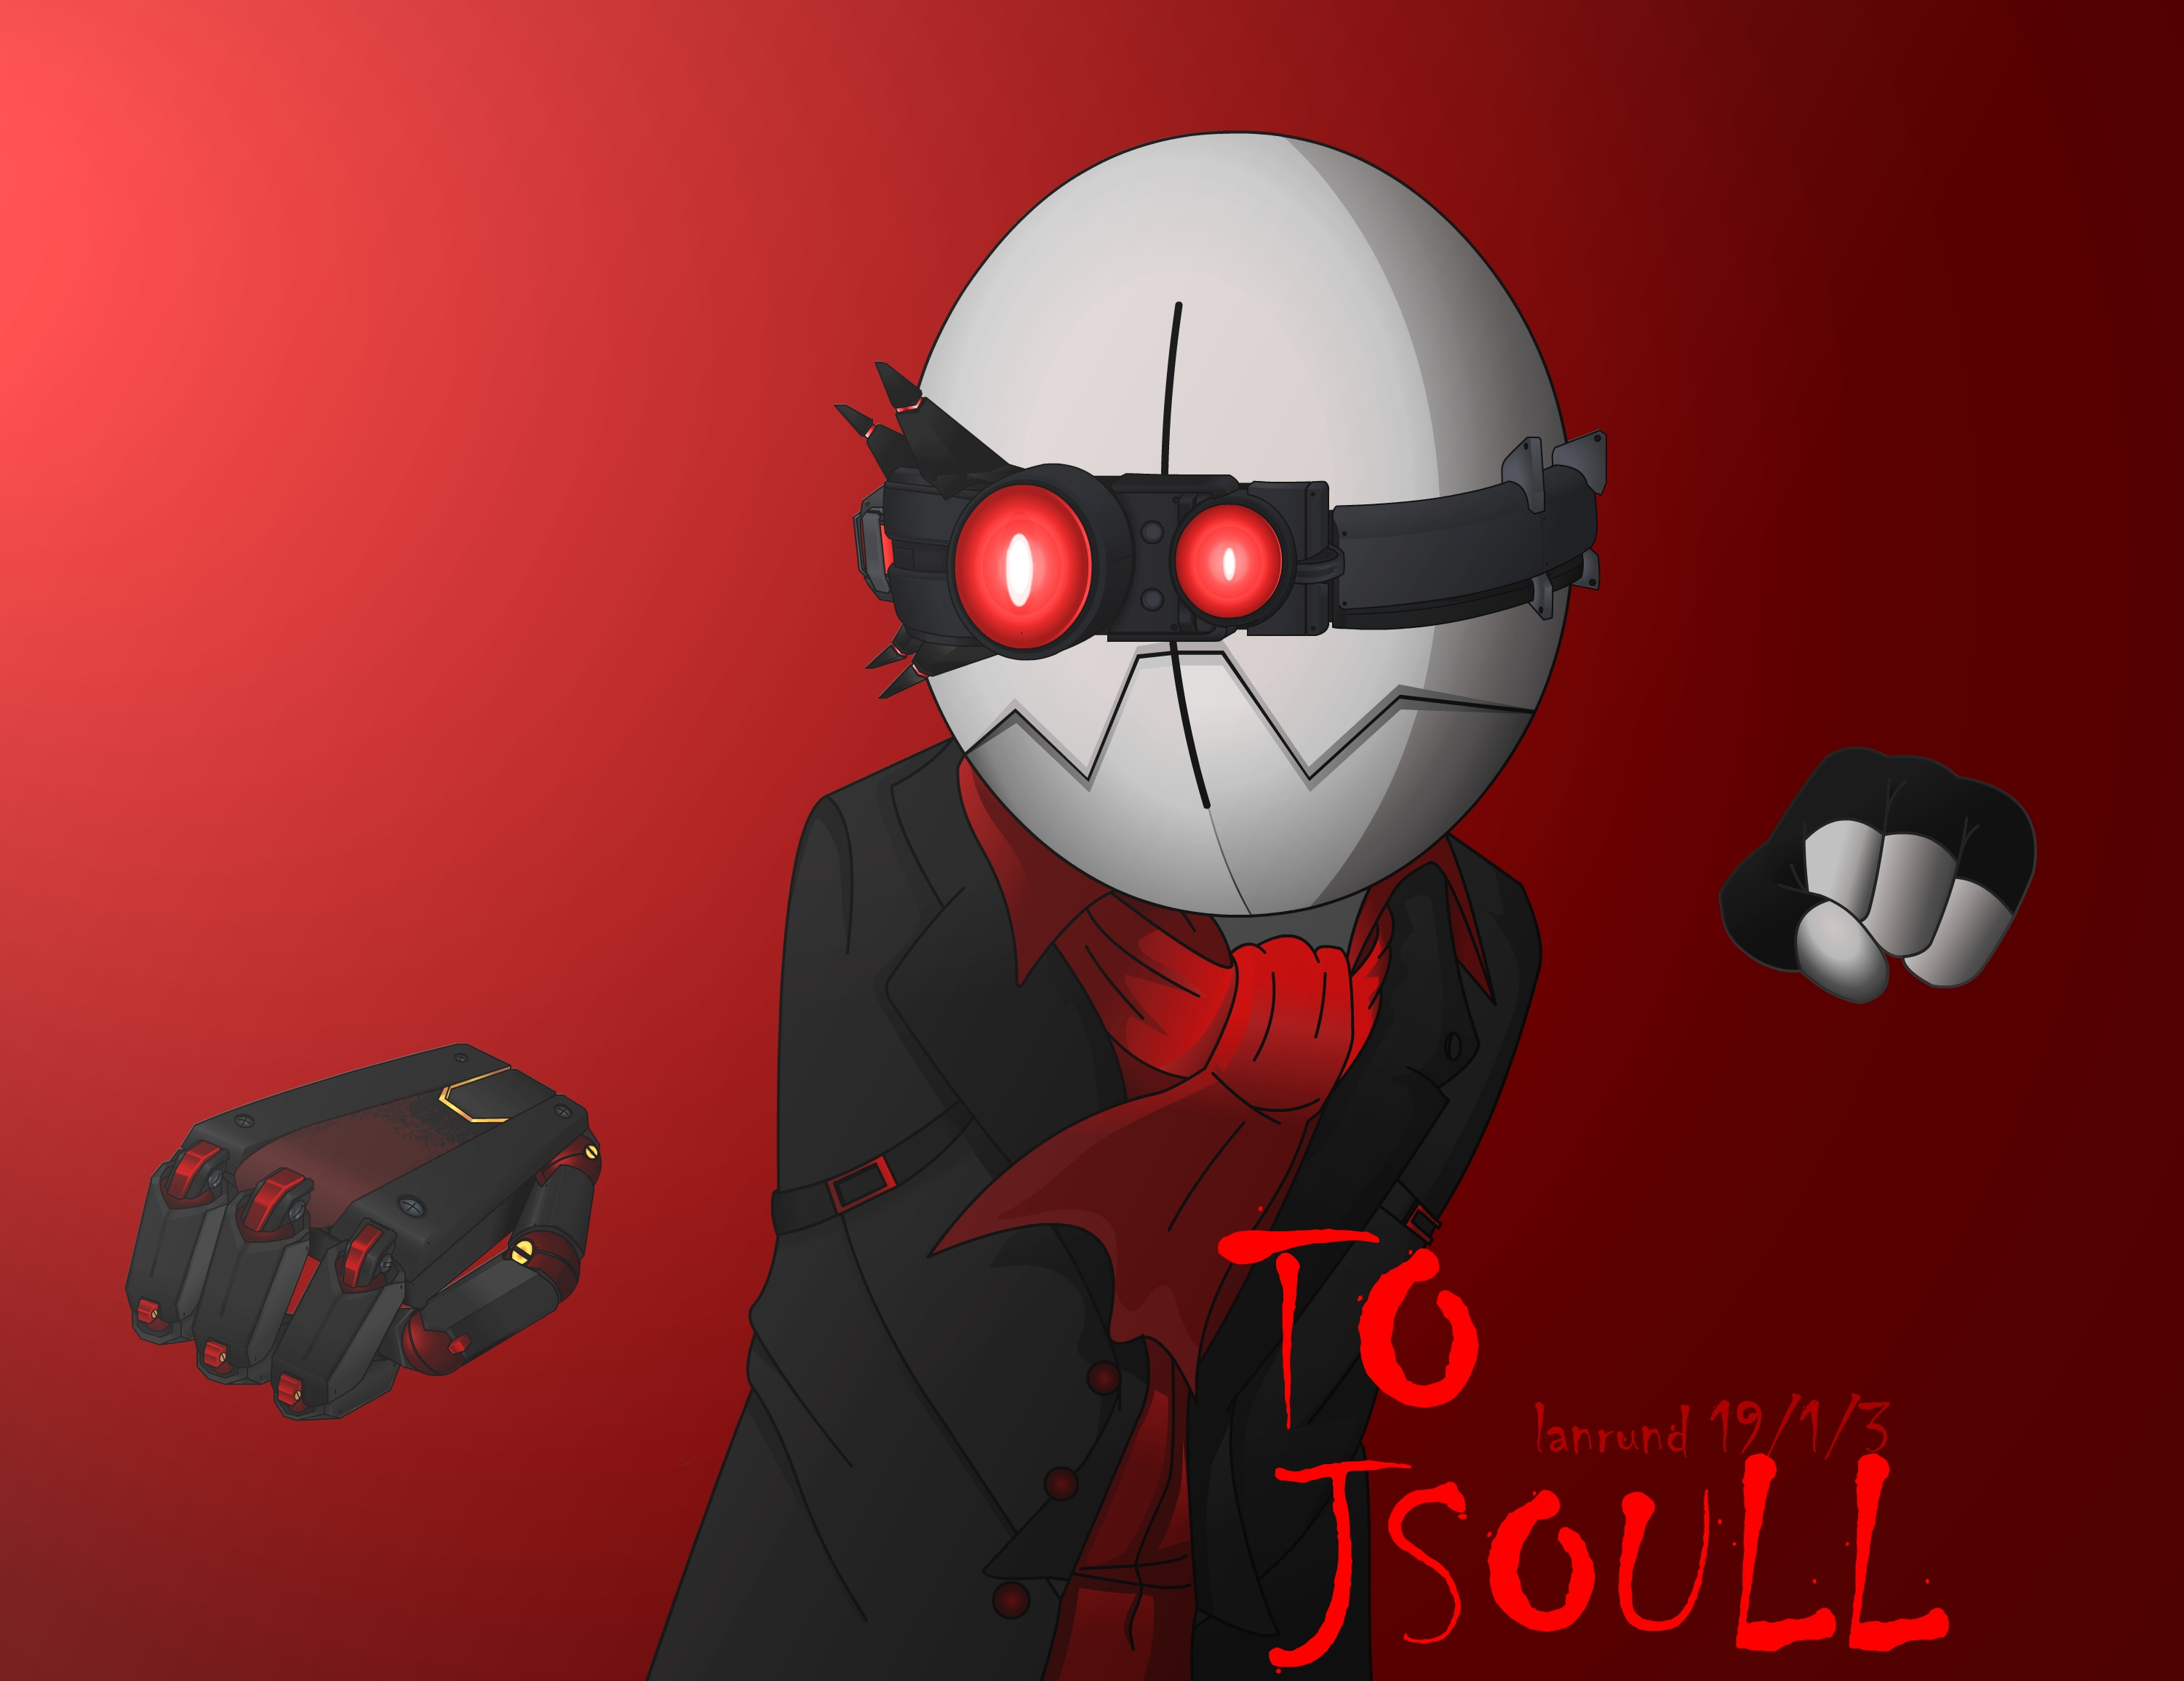 【to jsoull】